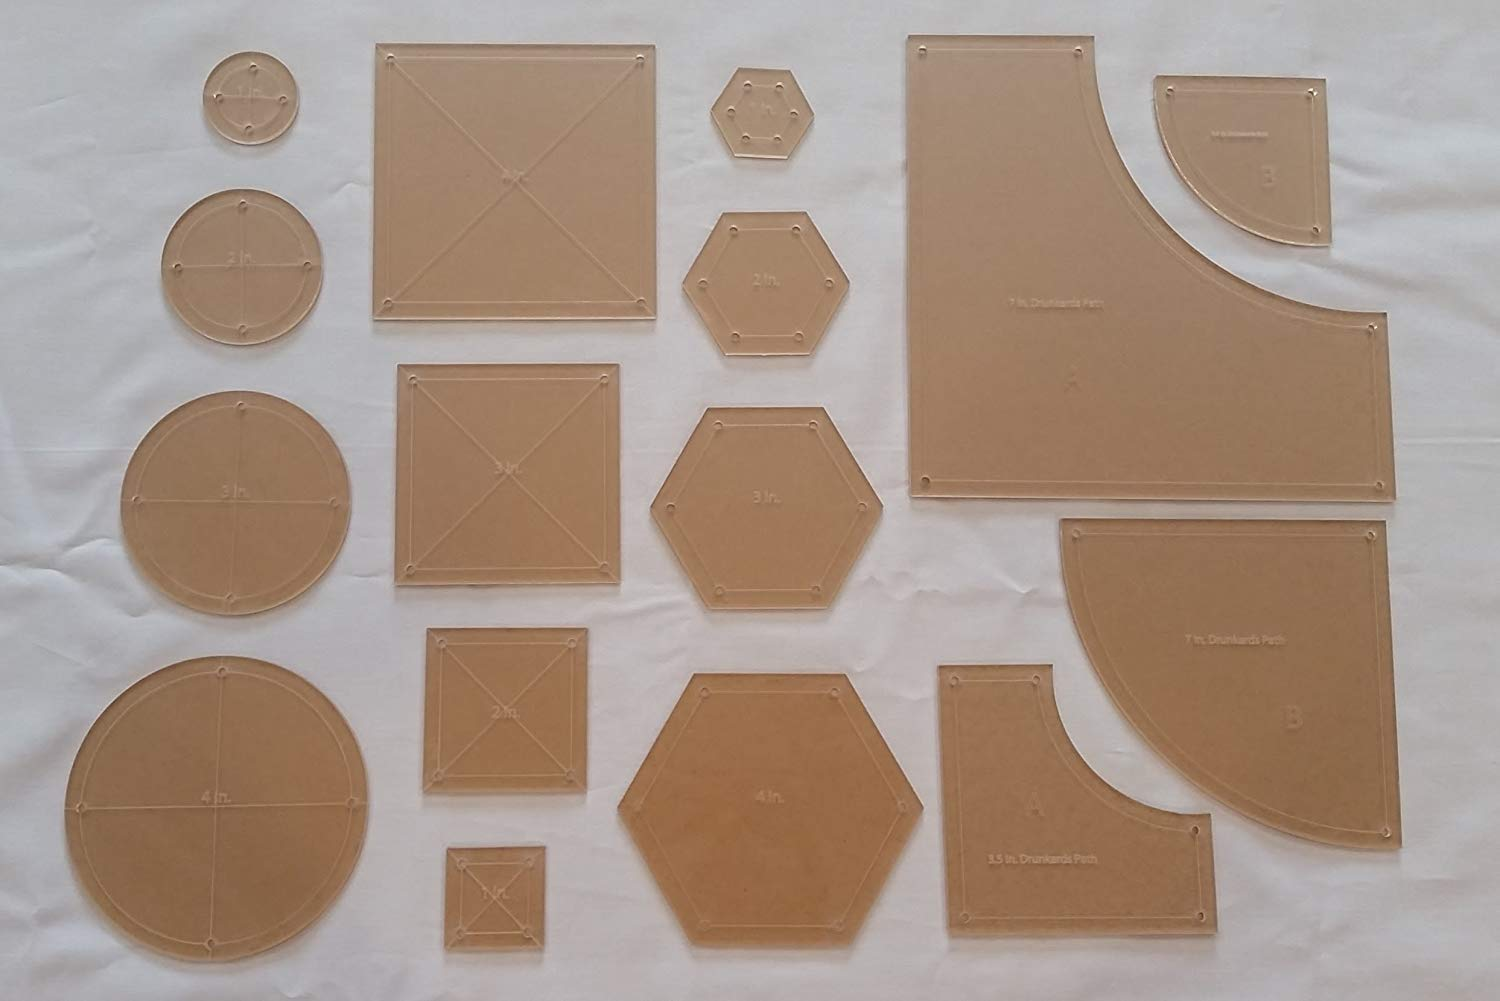 Drunkards Path, Hexagon, Circle, and Square Acrylic Quilting Templates, 4'', 3'', 2'', 1'' with 1/4'' Seam Allowance - 16 Pieces by LaserThing